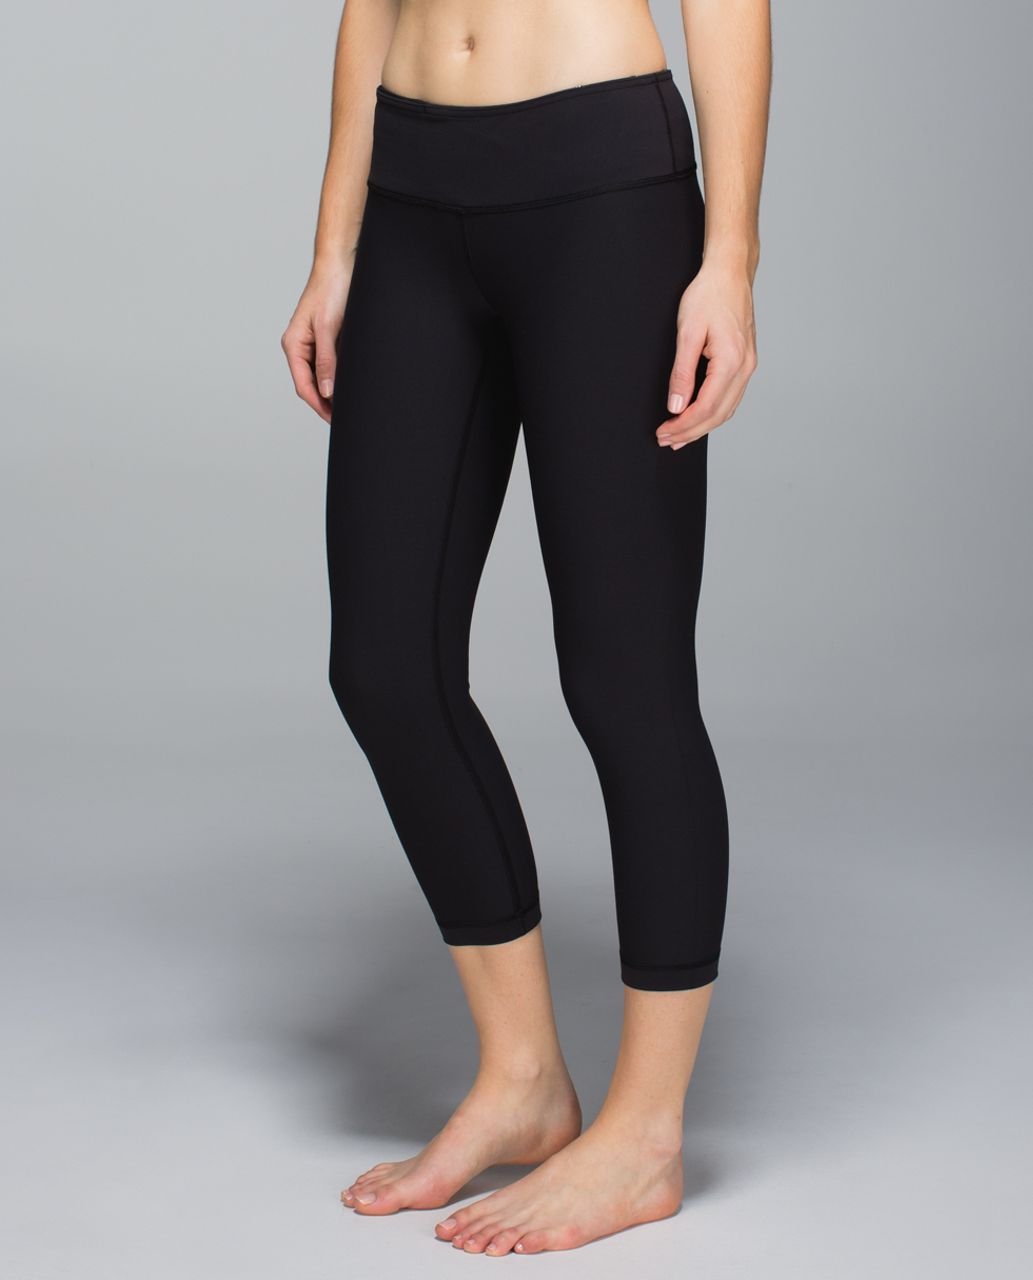 Lululemon Wunder Under Crop *Full-On Luon - Black / Wi14 Quilt 12